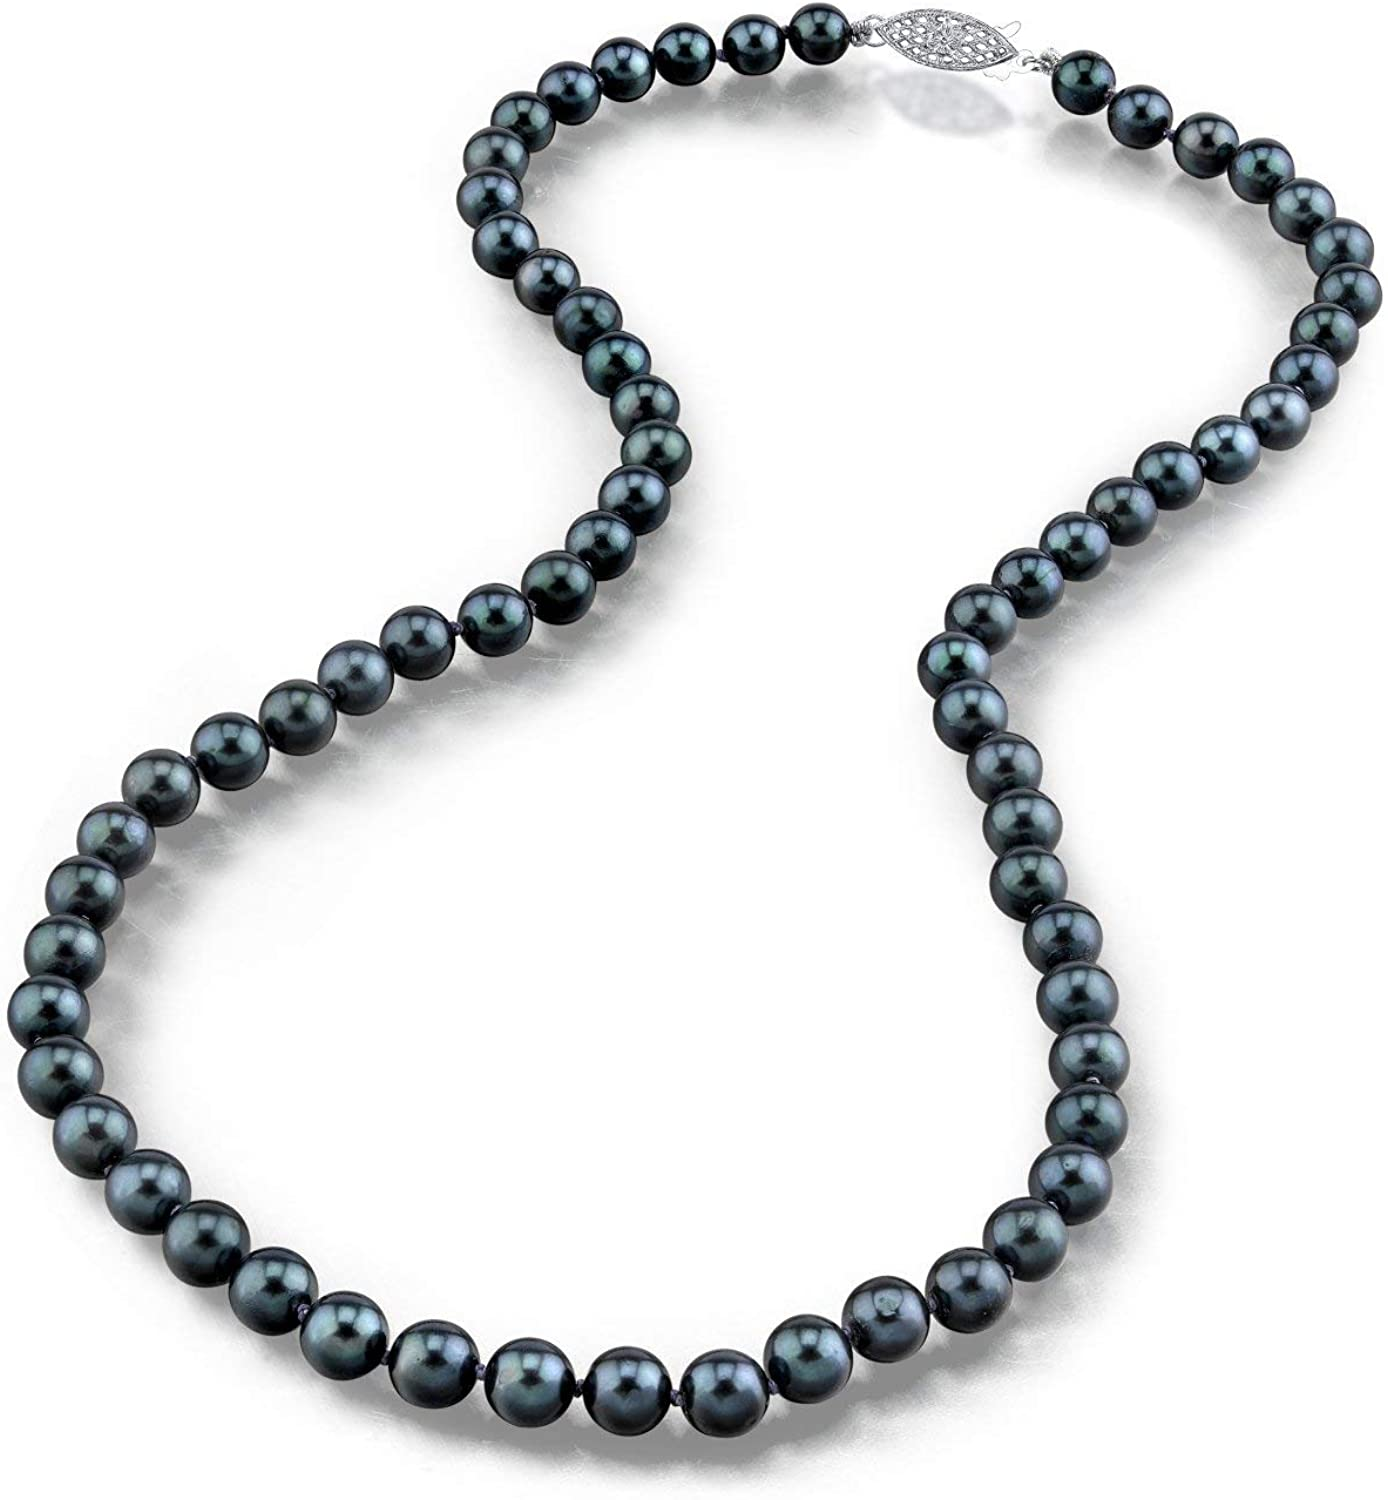 THE PEARL SOURCE 14K Gold 5.0-5.5mm Round Genuine Black Japanese Akoya Saltwater Cultured Pearl Necklace in 20